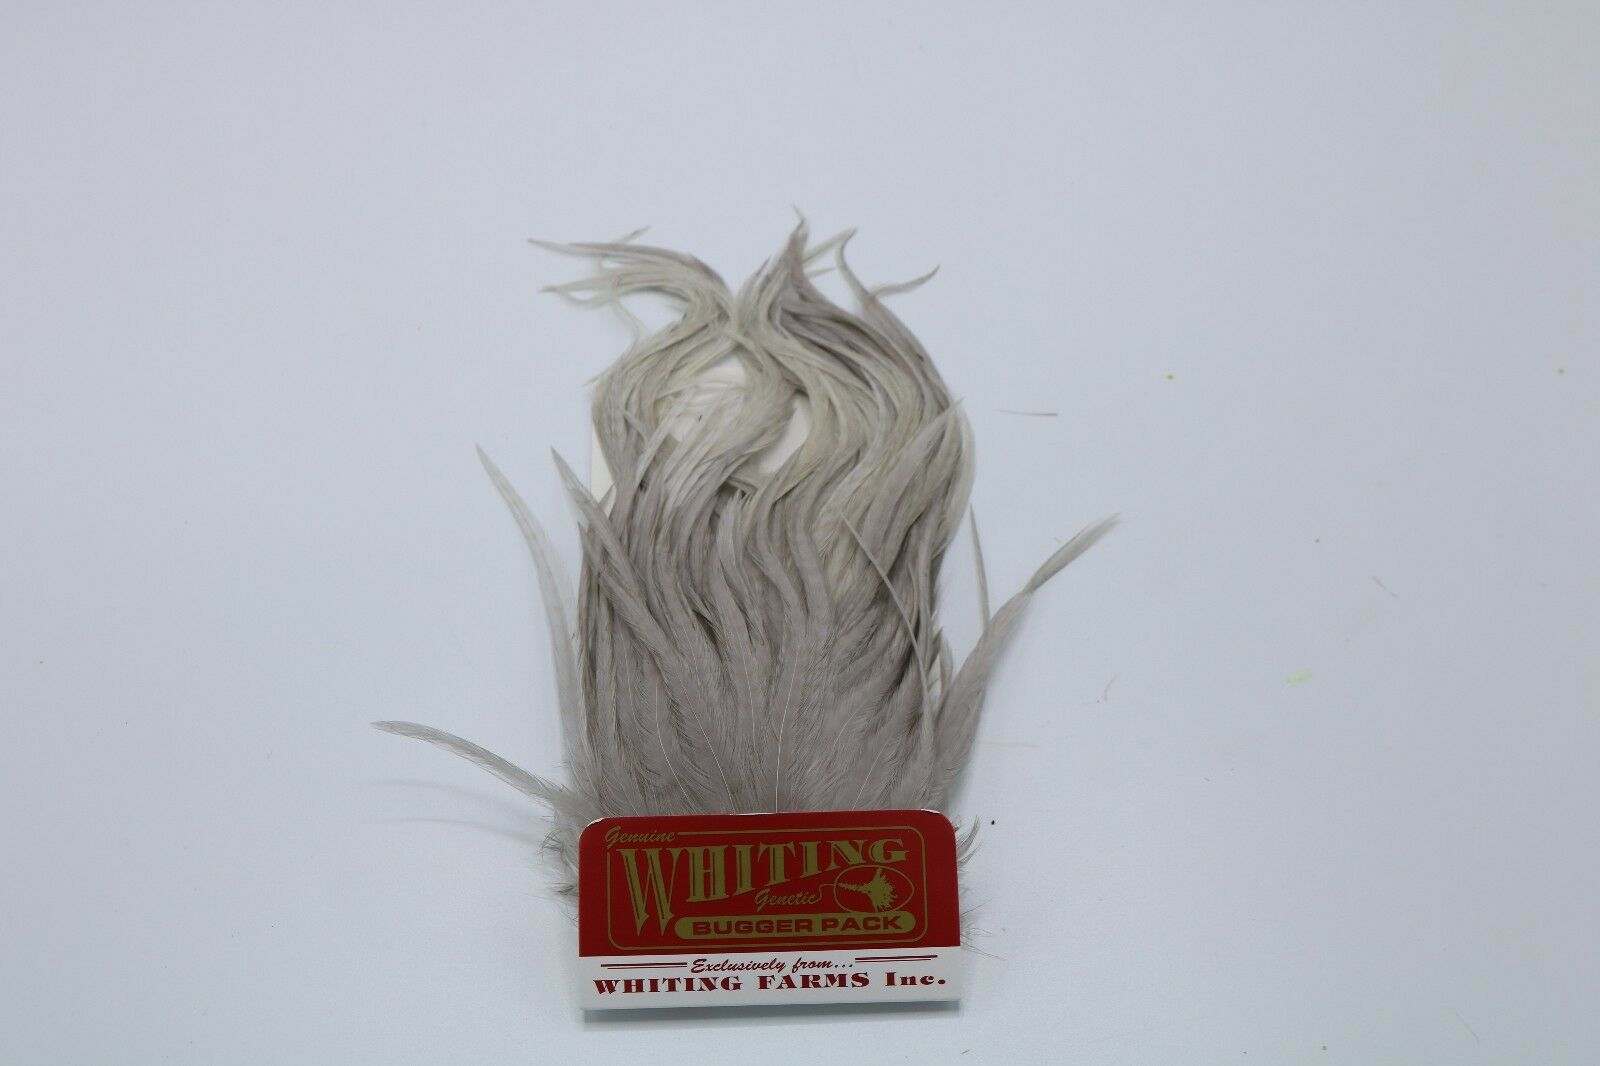 WHITING FARMS Bugger single patch your choice of color// feather size